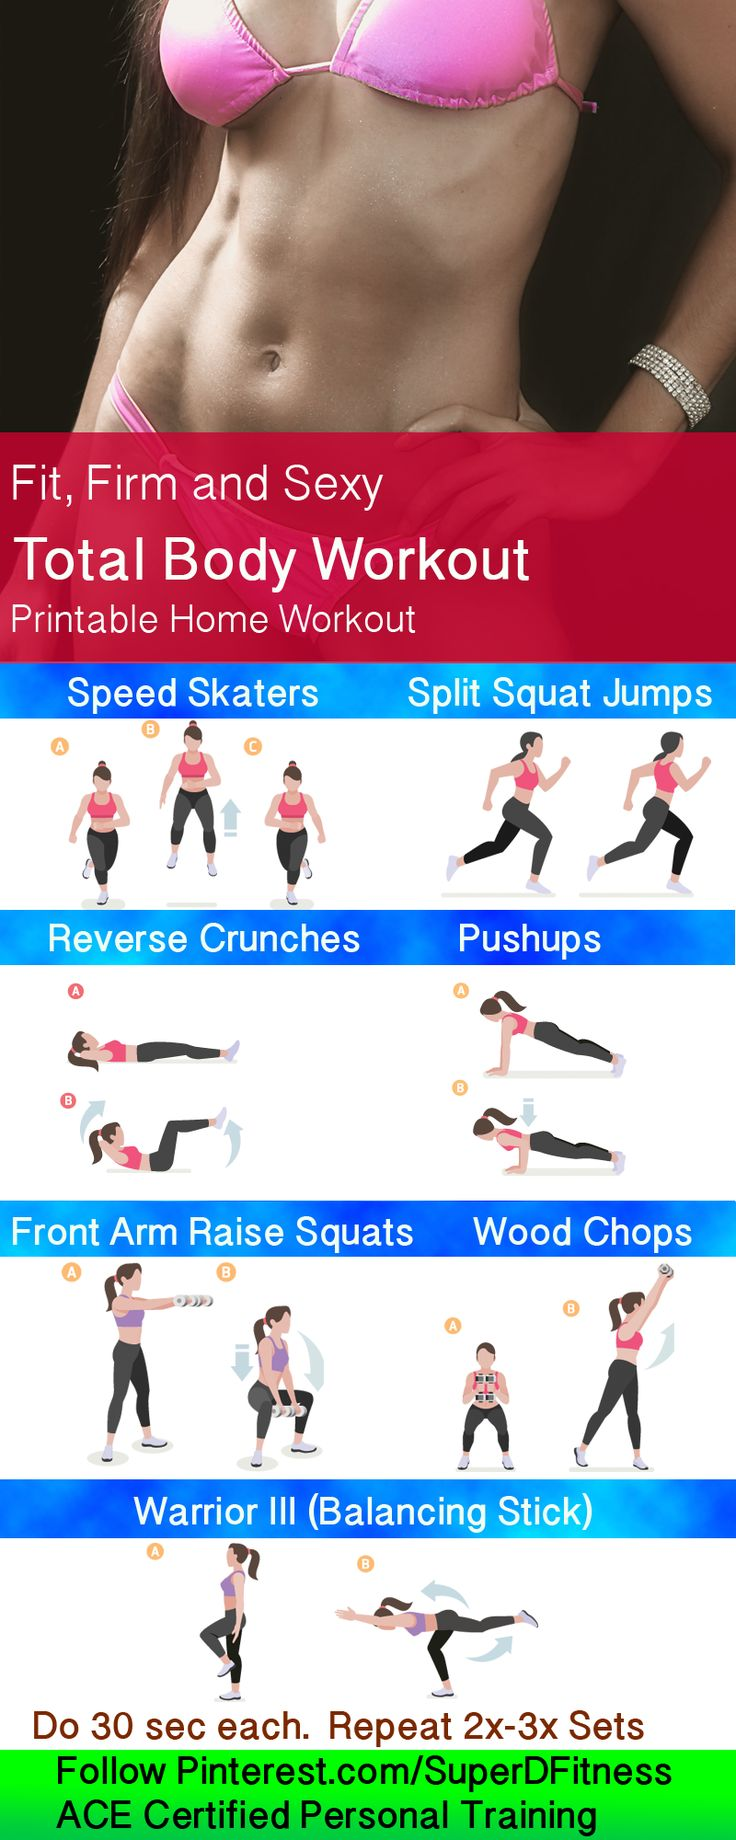 Get Fit, Firm, and Sexy! Total body printable custom workout. Follow personal trainer Pinterest.com/SuperDFitness